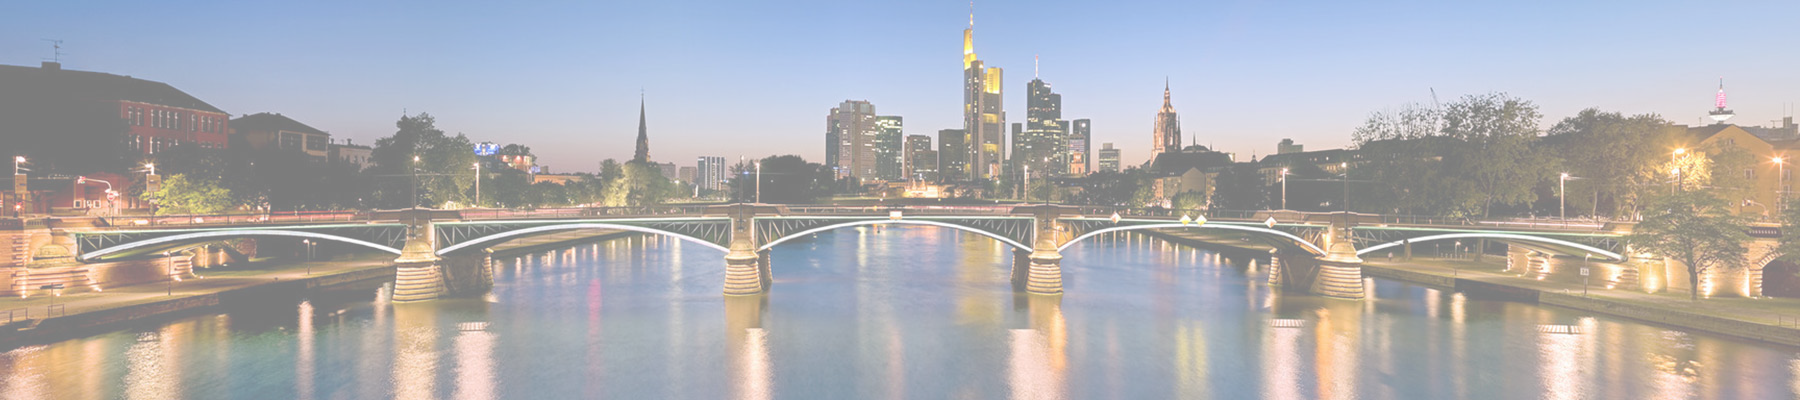 Removals to Germany Frankfurt from United Kingdom/London- Europe Remove - Removals Company